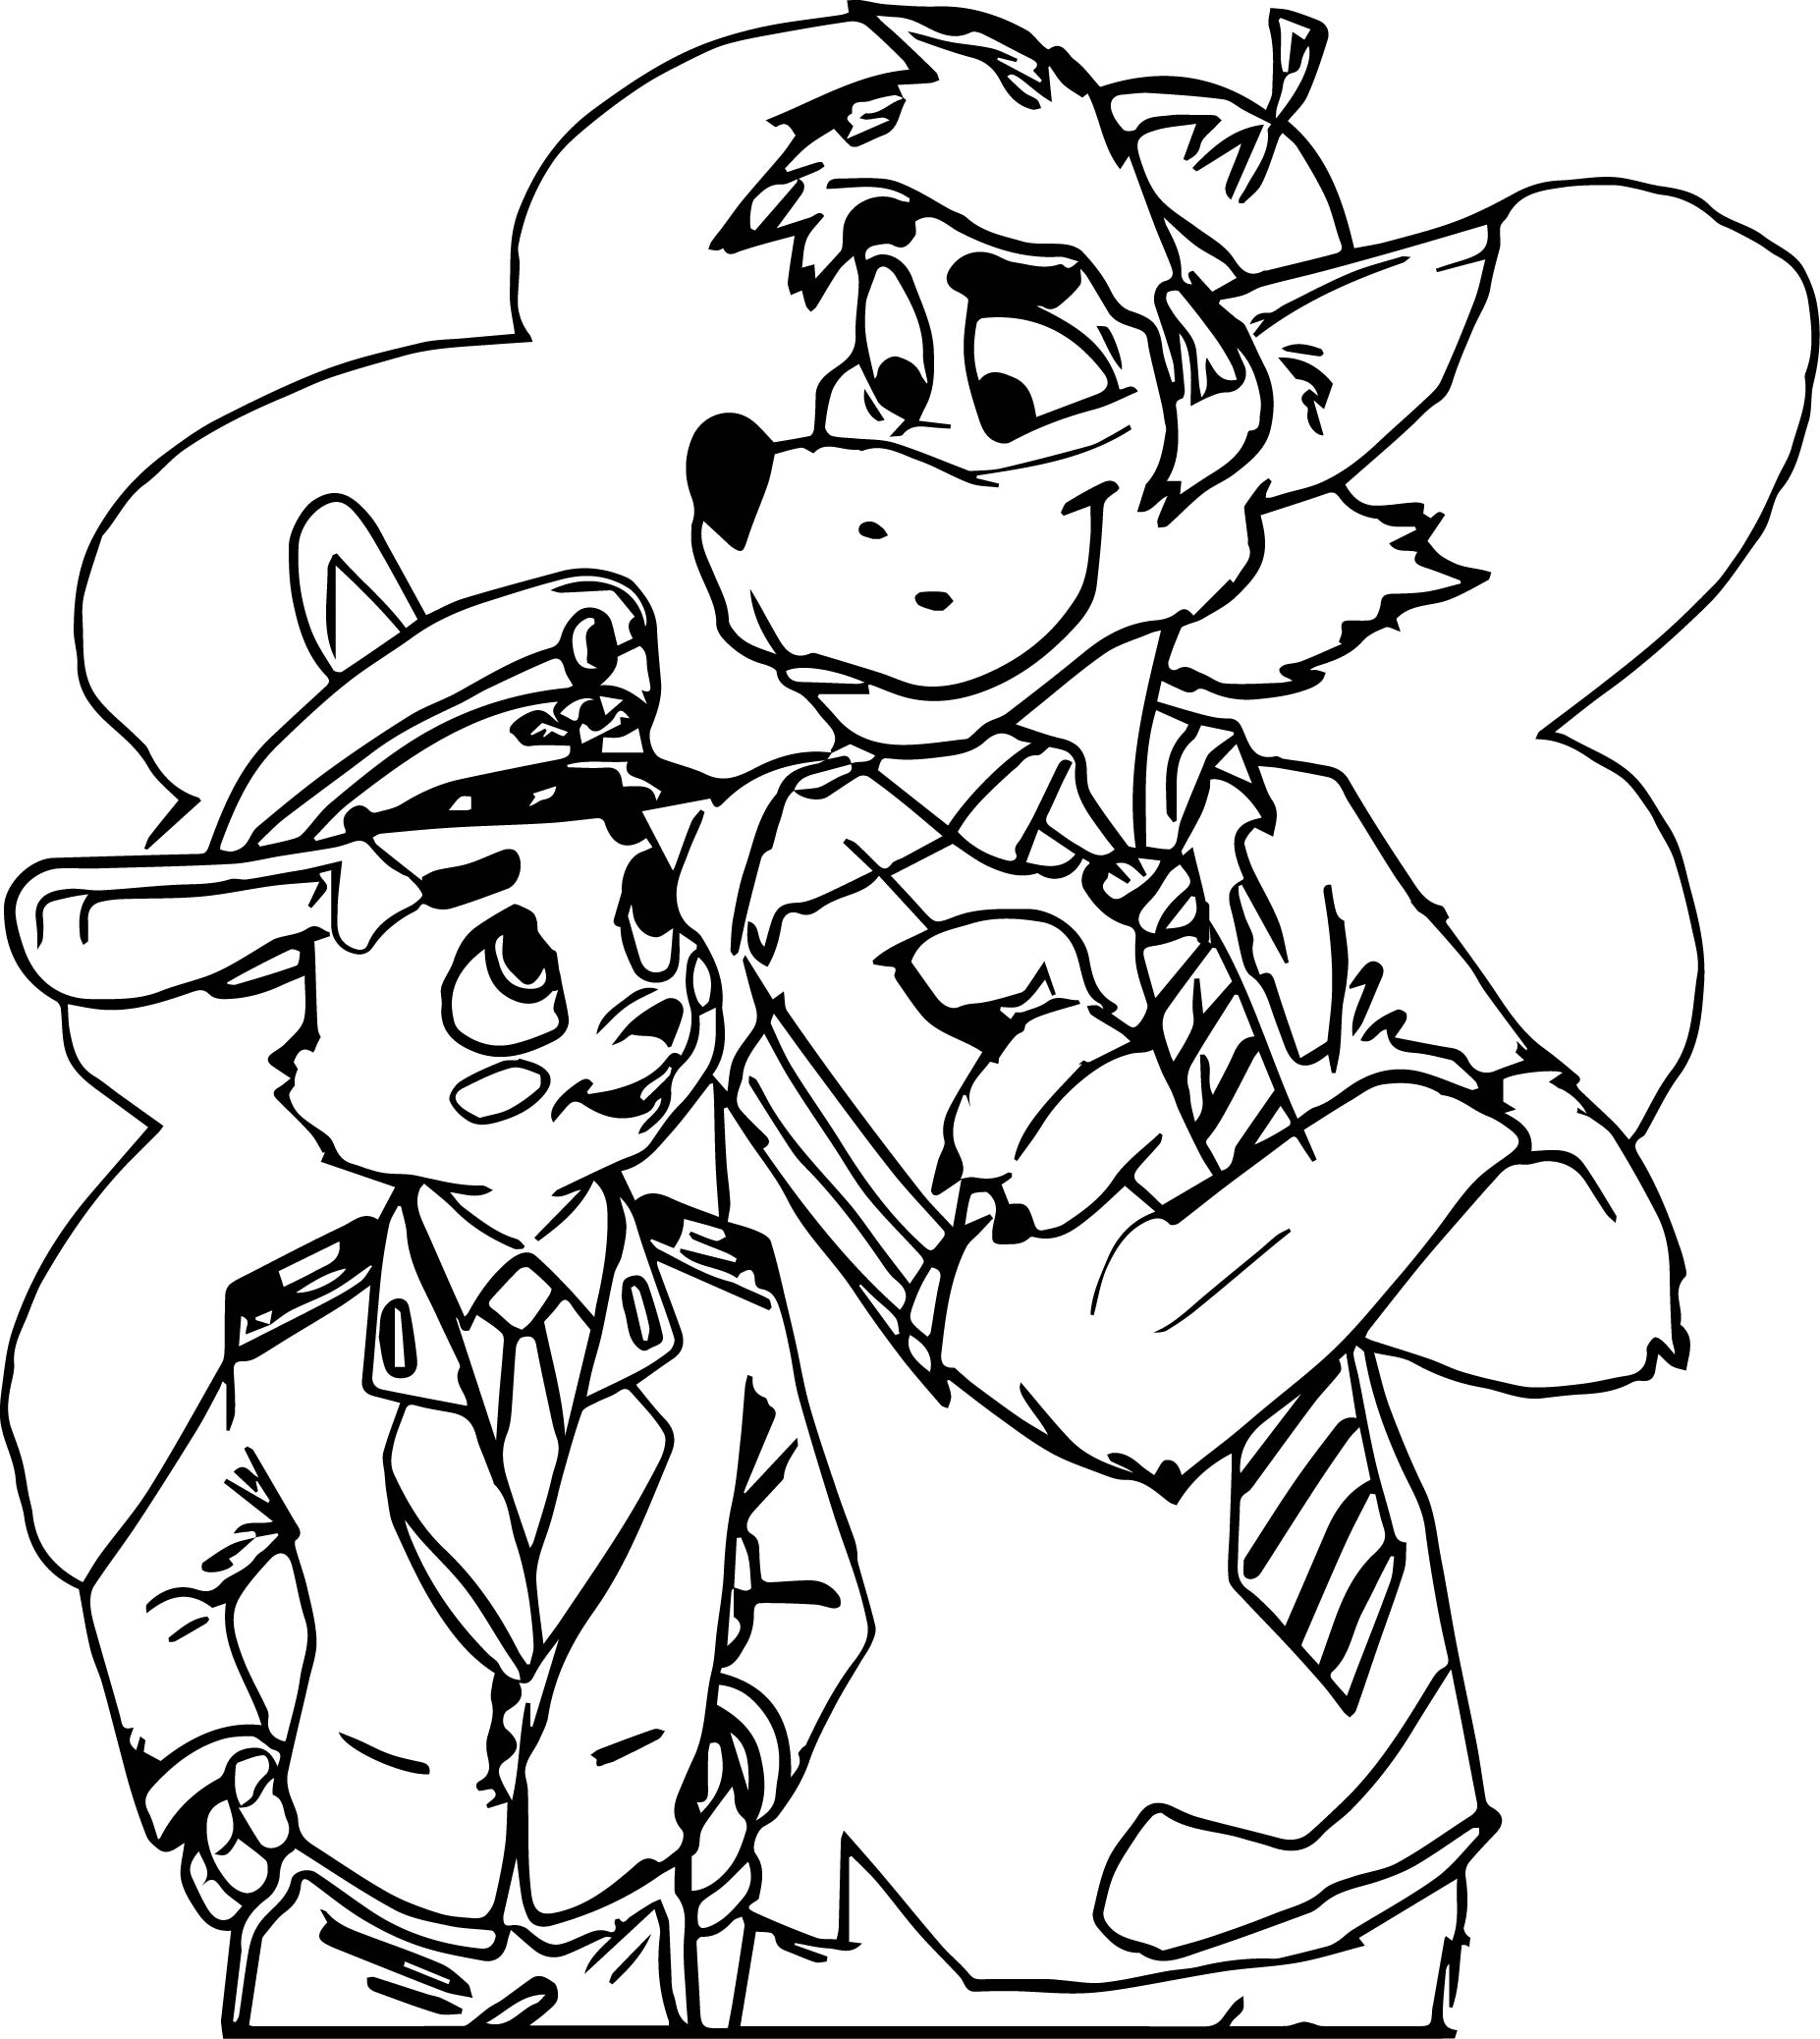 Zootopia Different Judy Hopps Nick Wilde Coloring Page